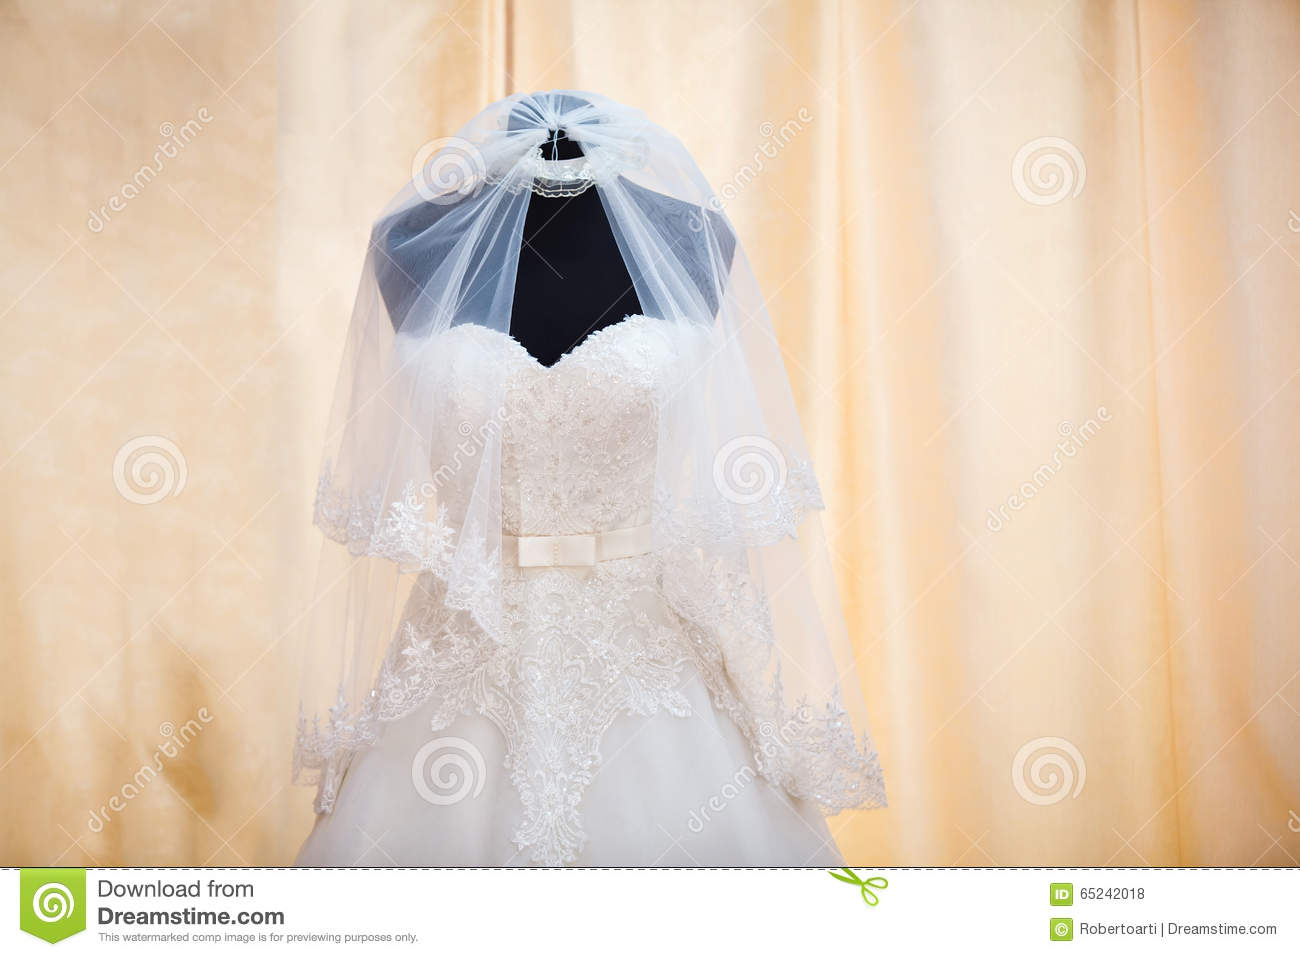 Wedding Dress And Veil On Mannequin Stock Photo